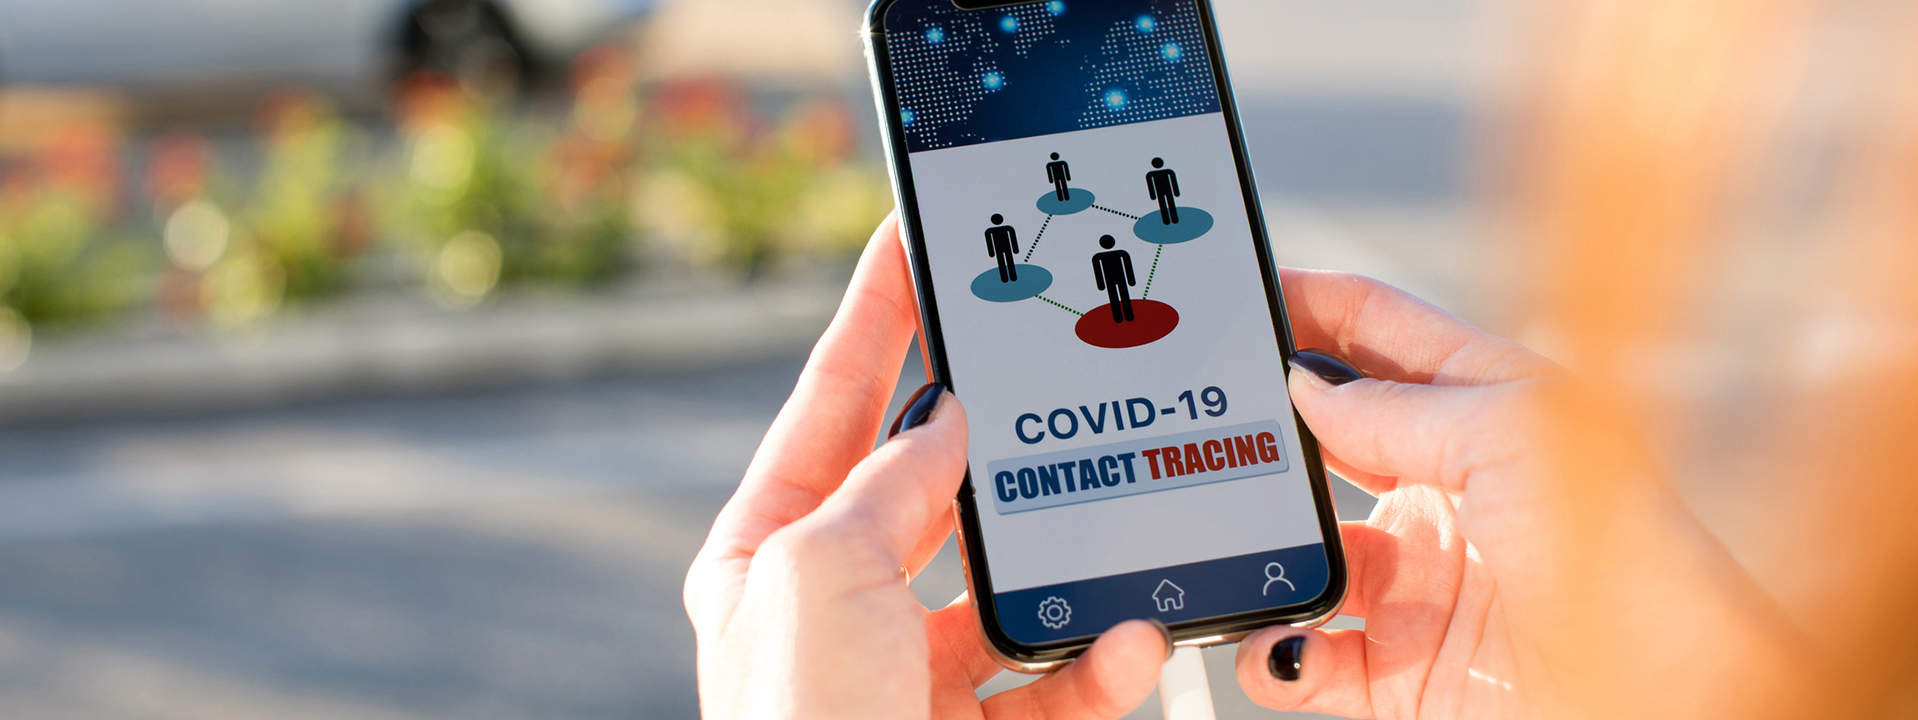 woman using contact tracing app on phone